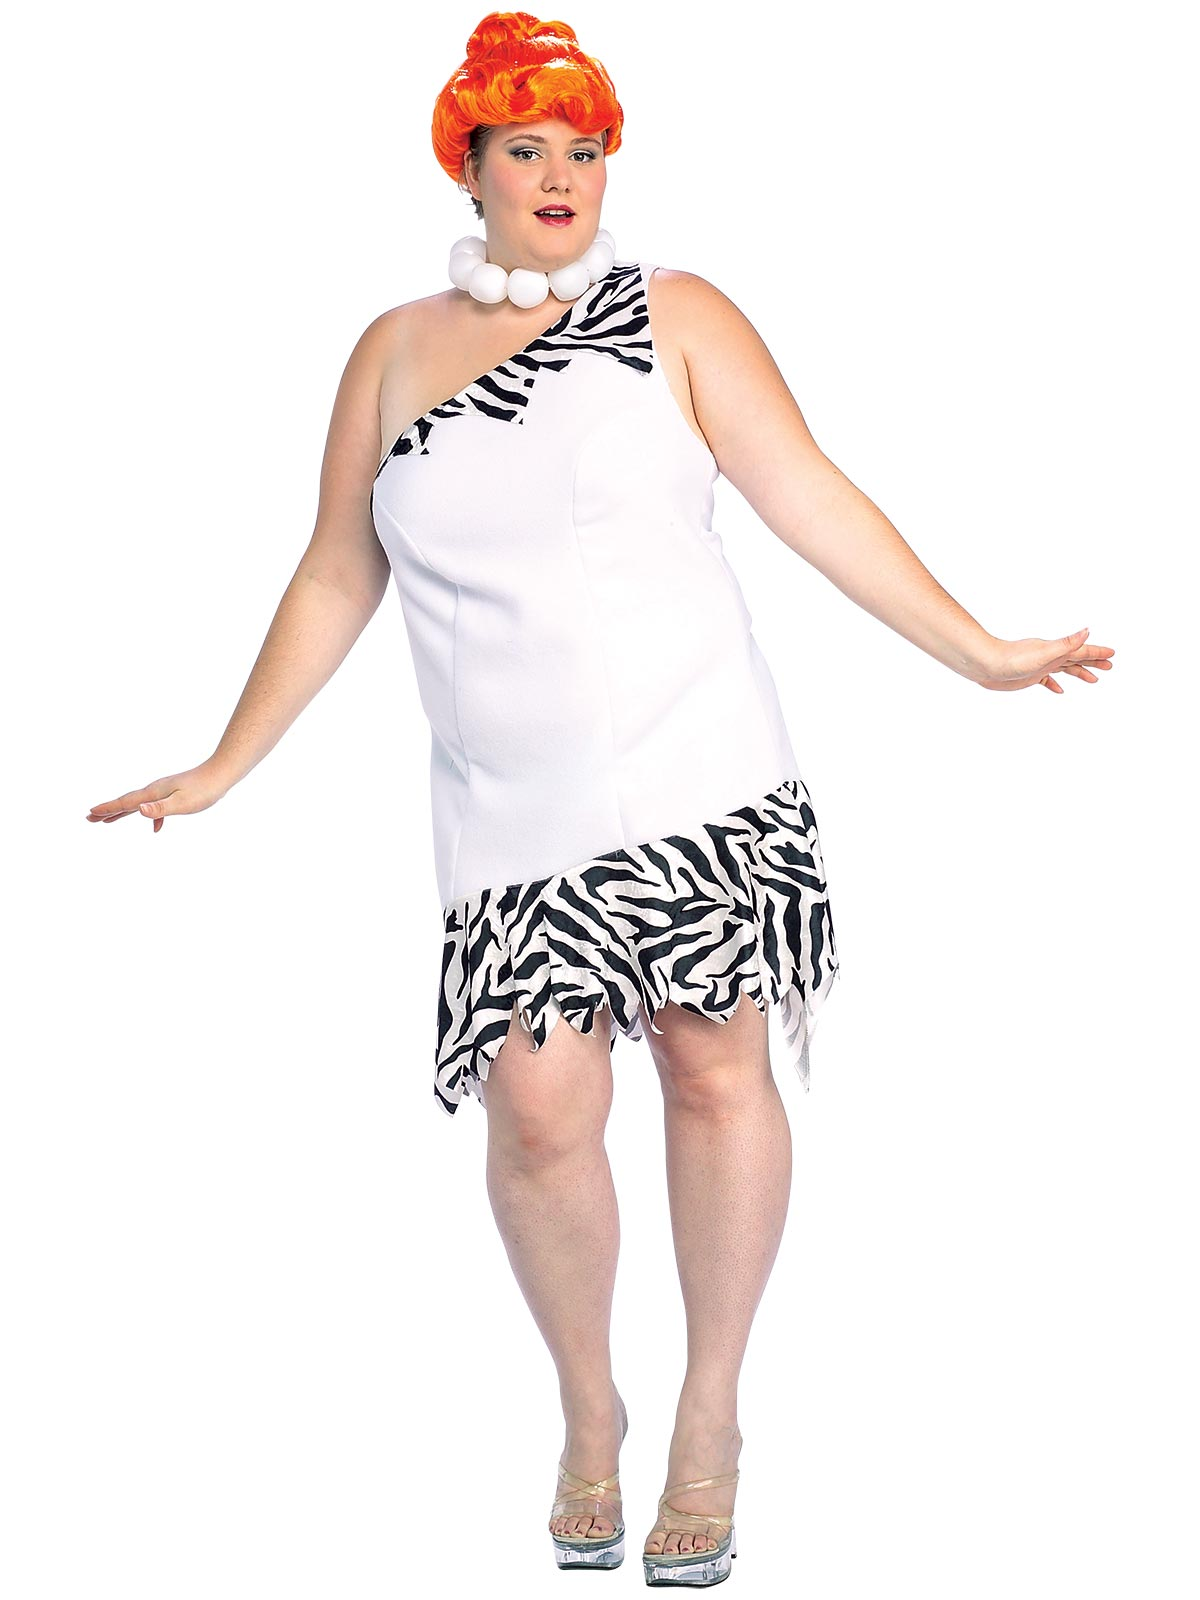 Wilma Plus Size The Flintstones Costume - Buy Online Only